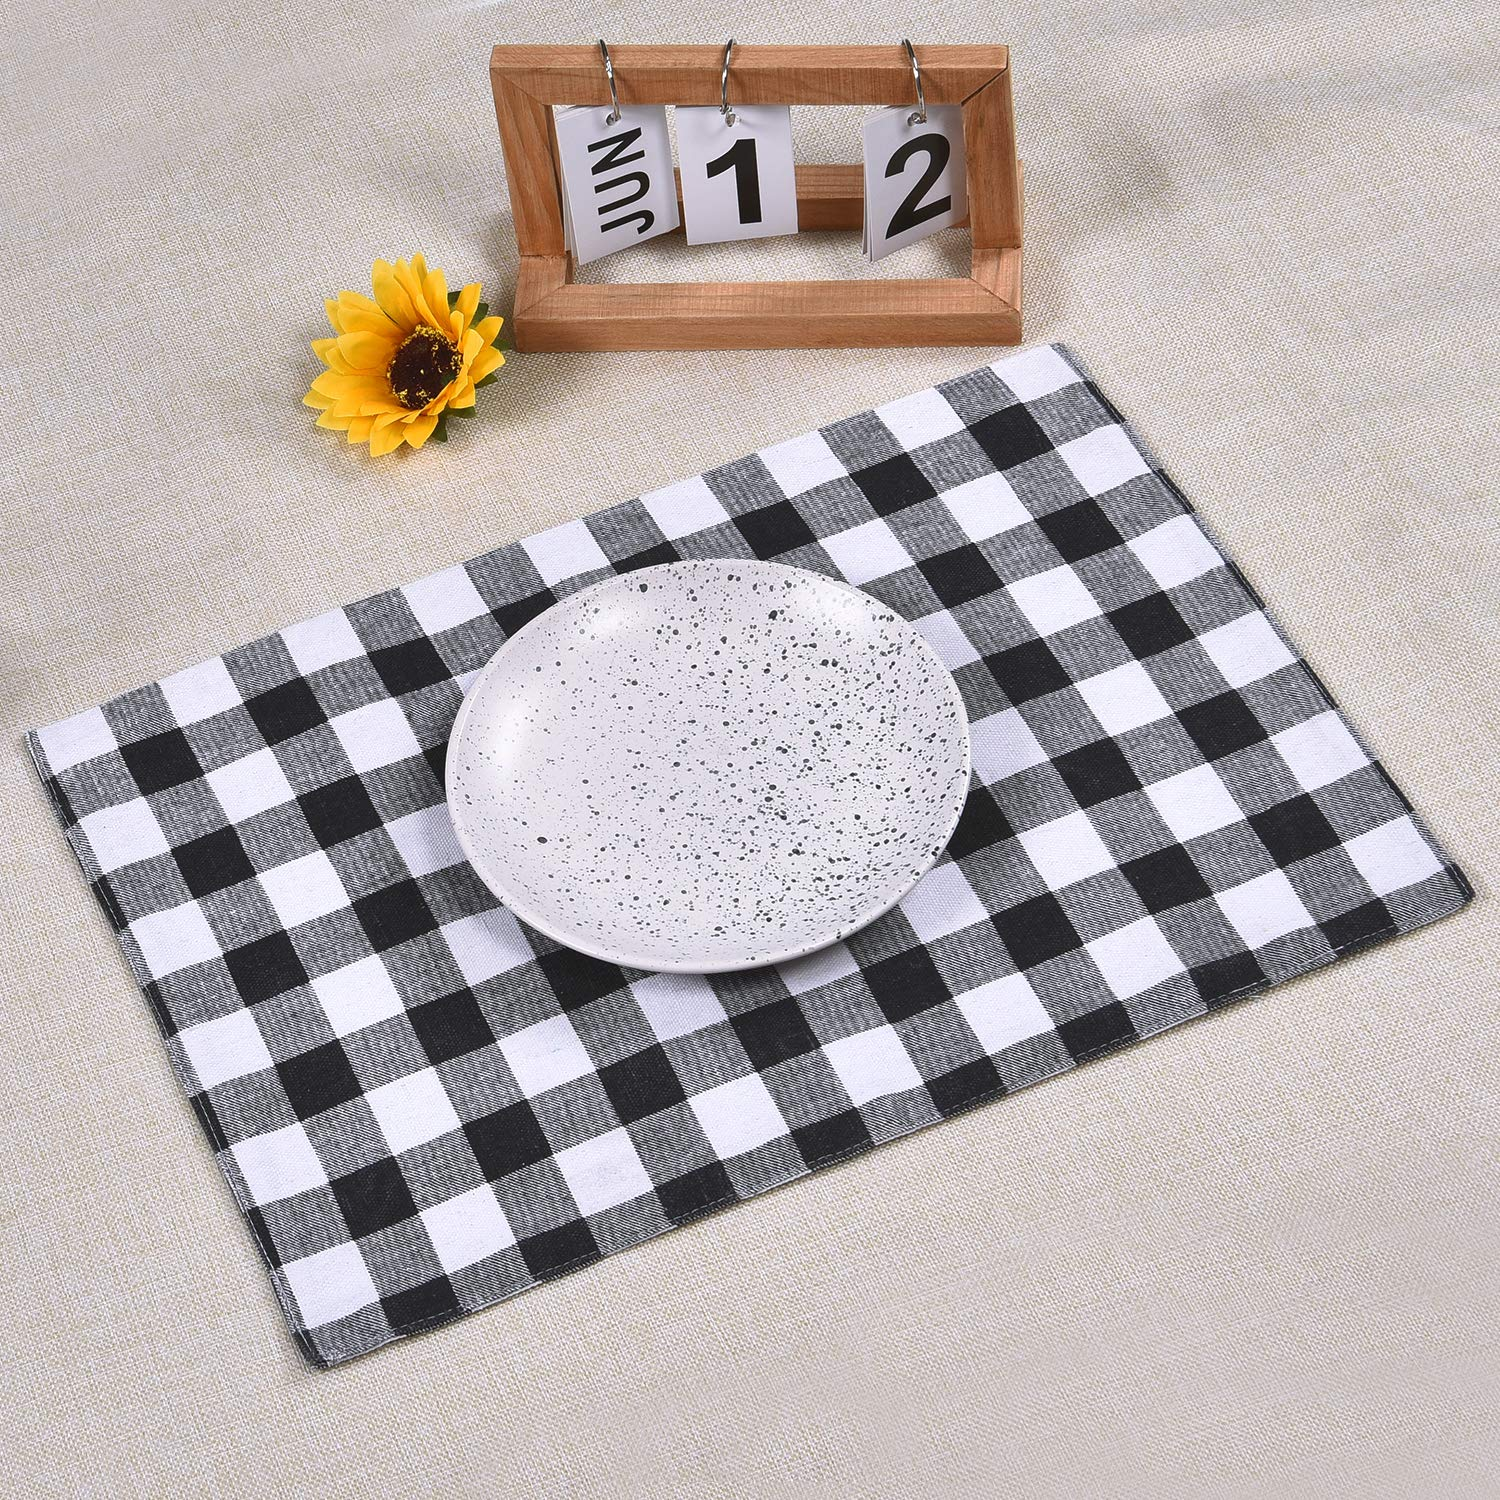 12x18 Inches Sunlightfree Trellis Placemats Geomertic Black /& White Checked Rectangle Cotton and Linen Table Place Mats Set of 4